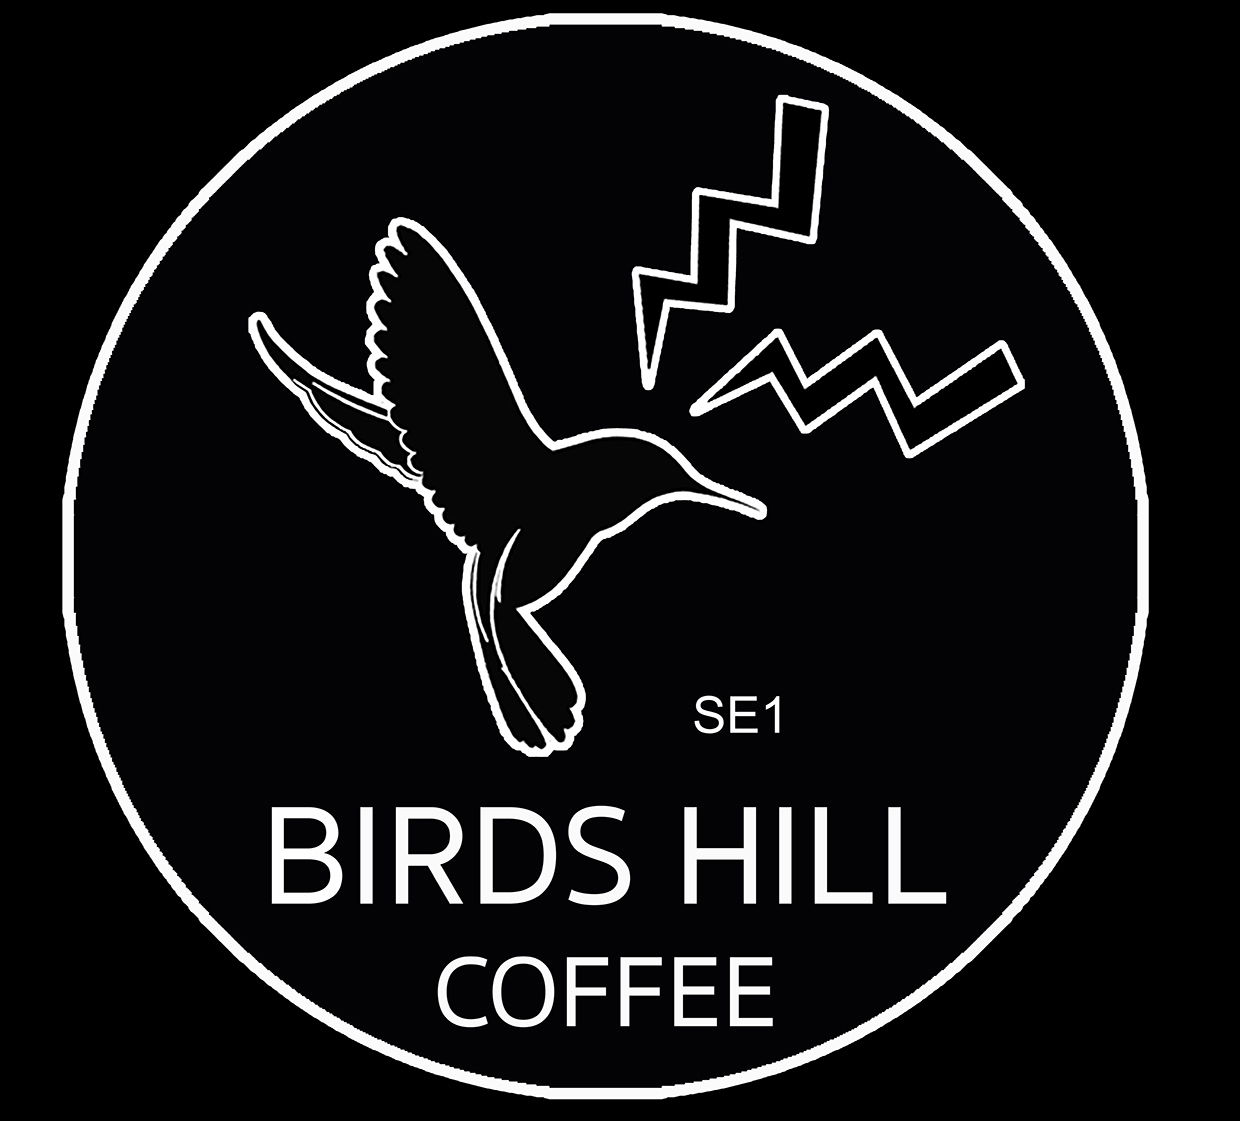 Birds Hill Coffee